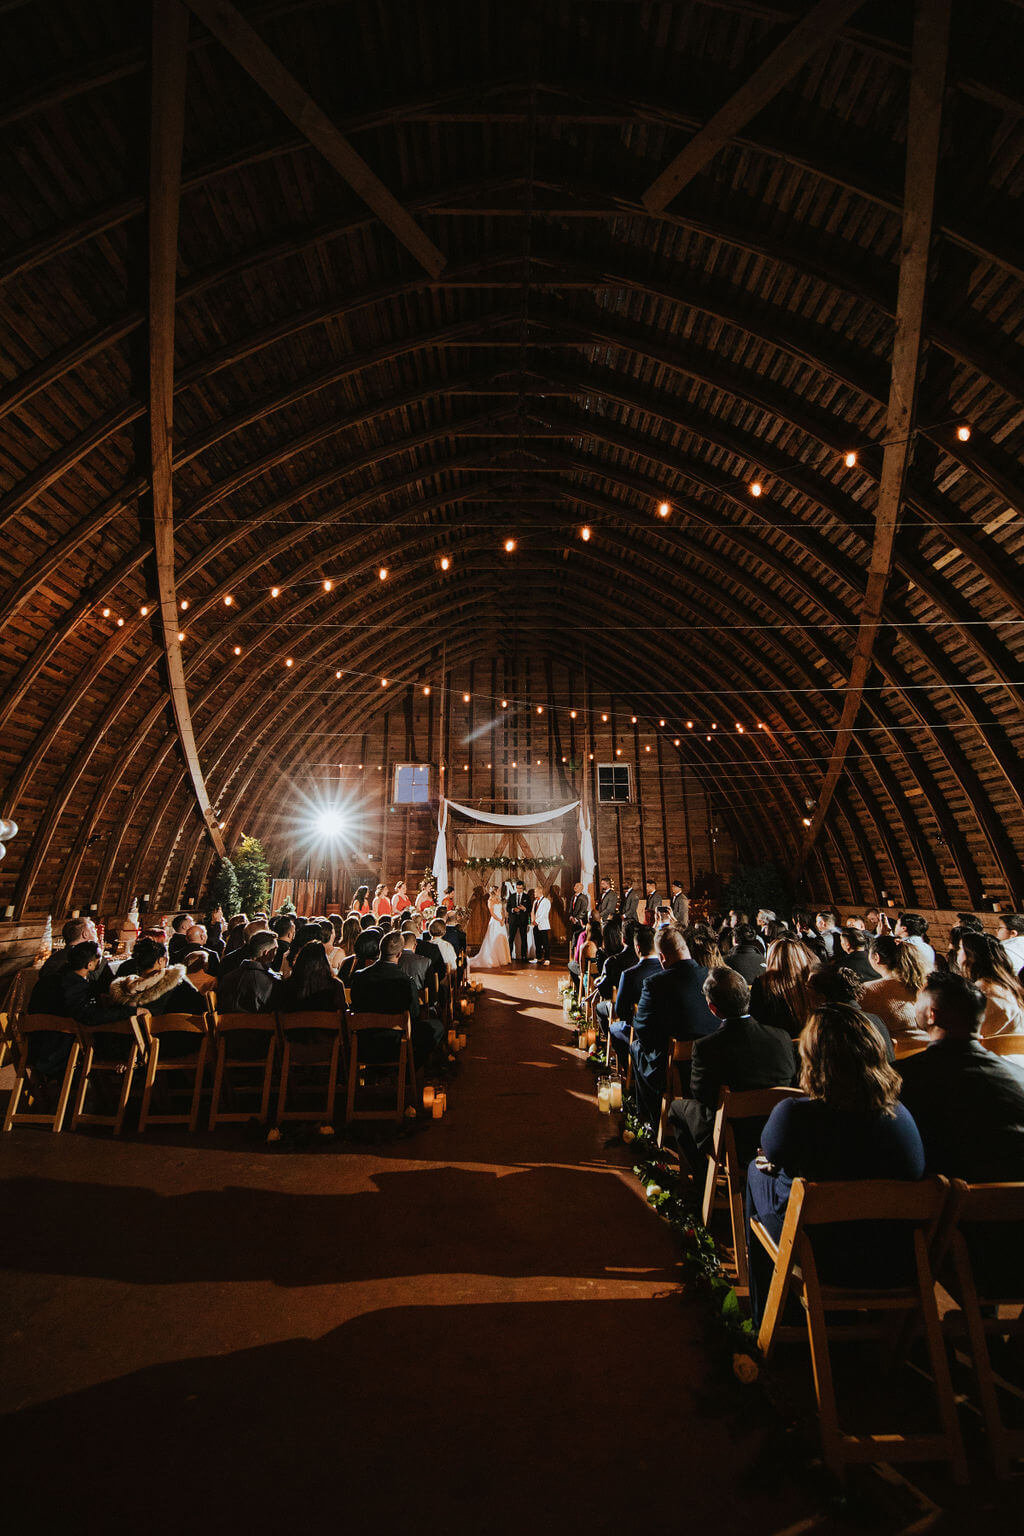 Facebook-the-barn-at-holly-farm-wedding-amanda-linh-by-weddings-by-adina-photography-66